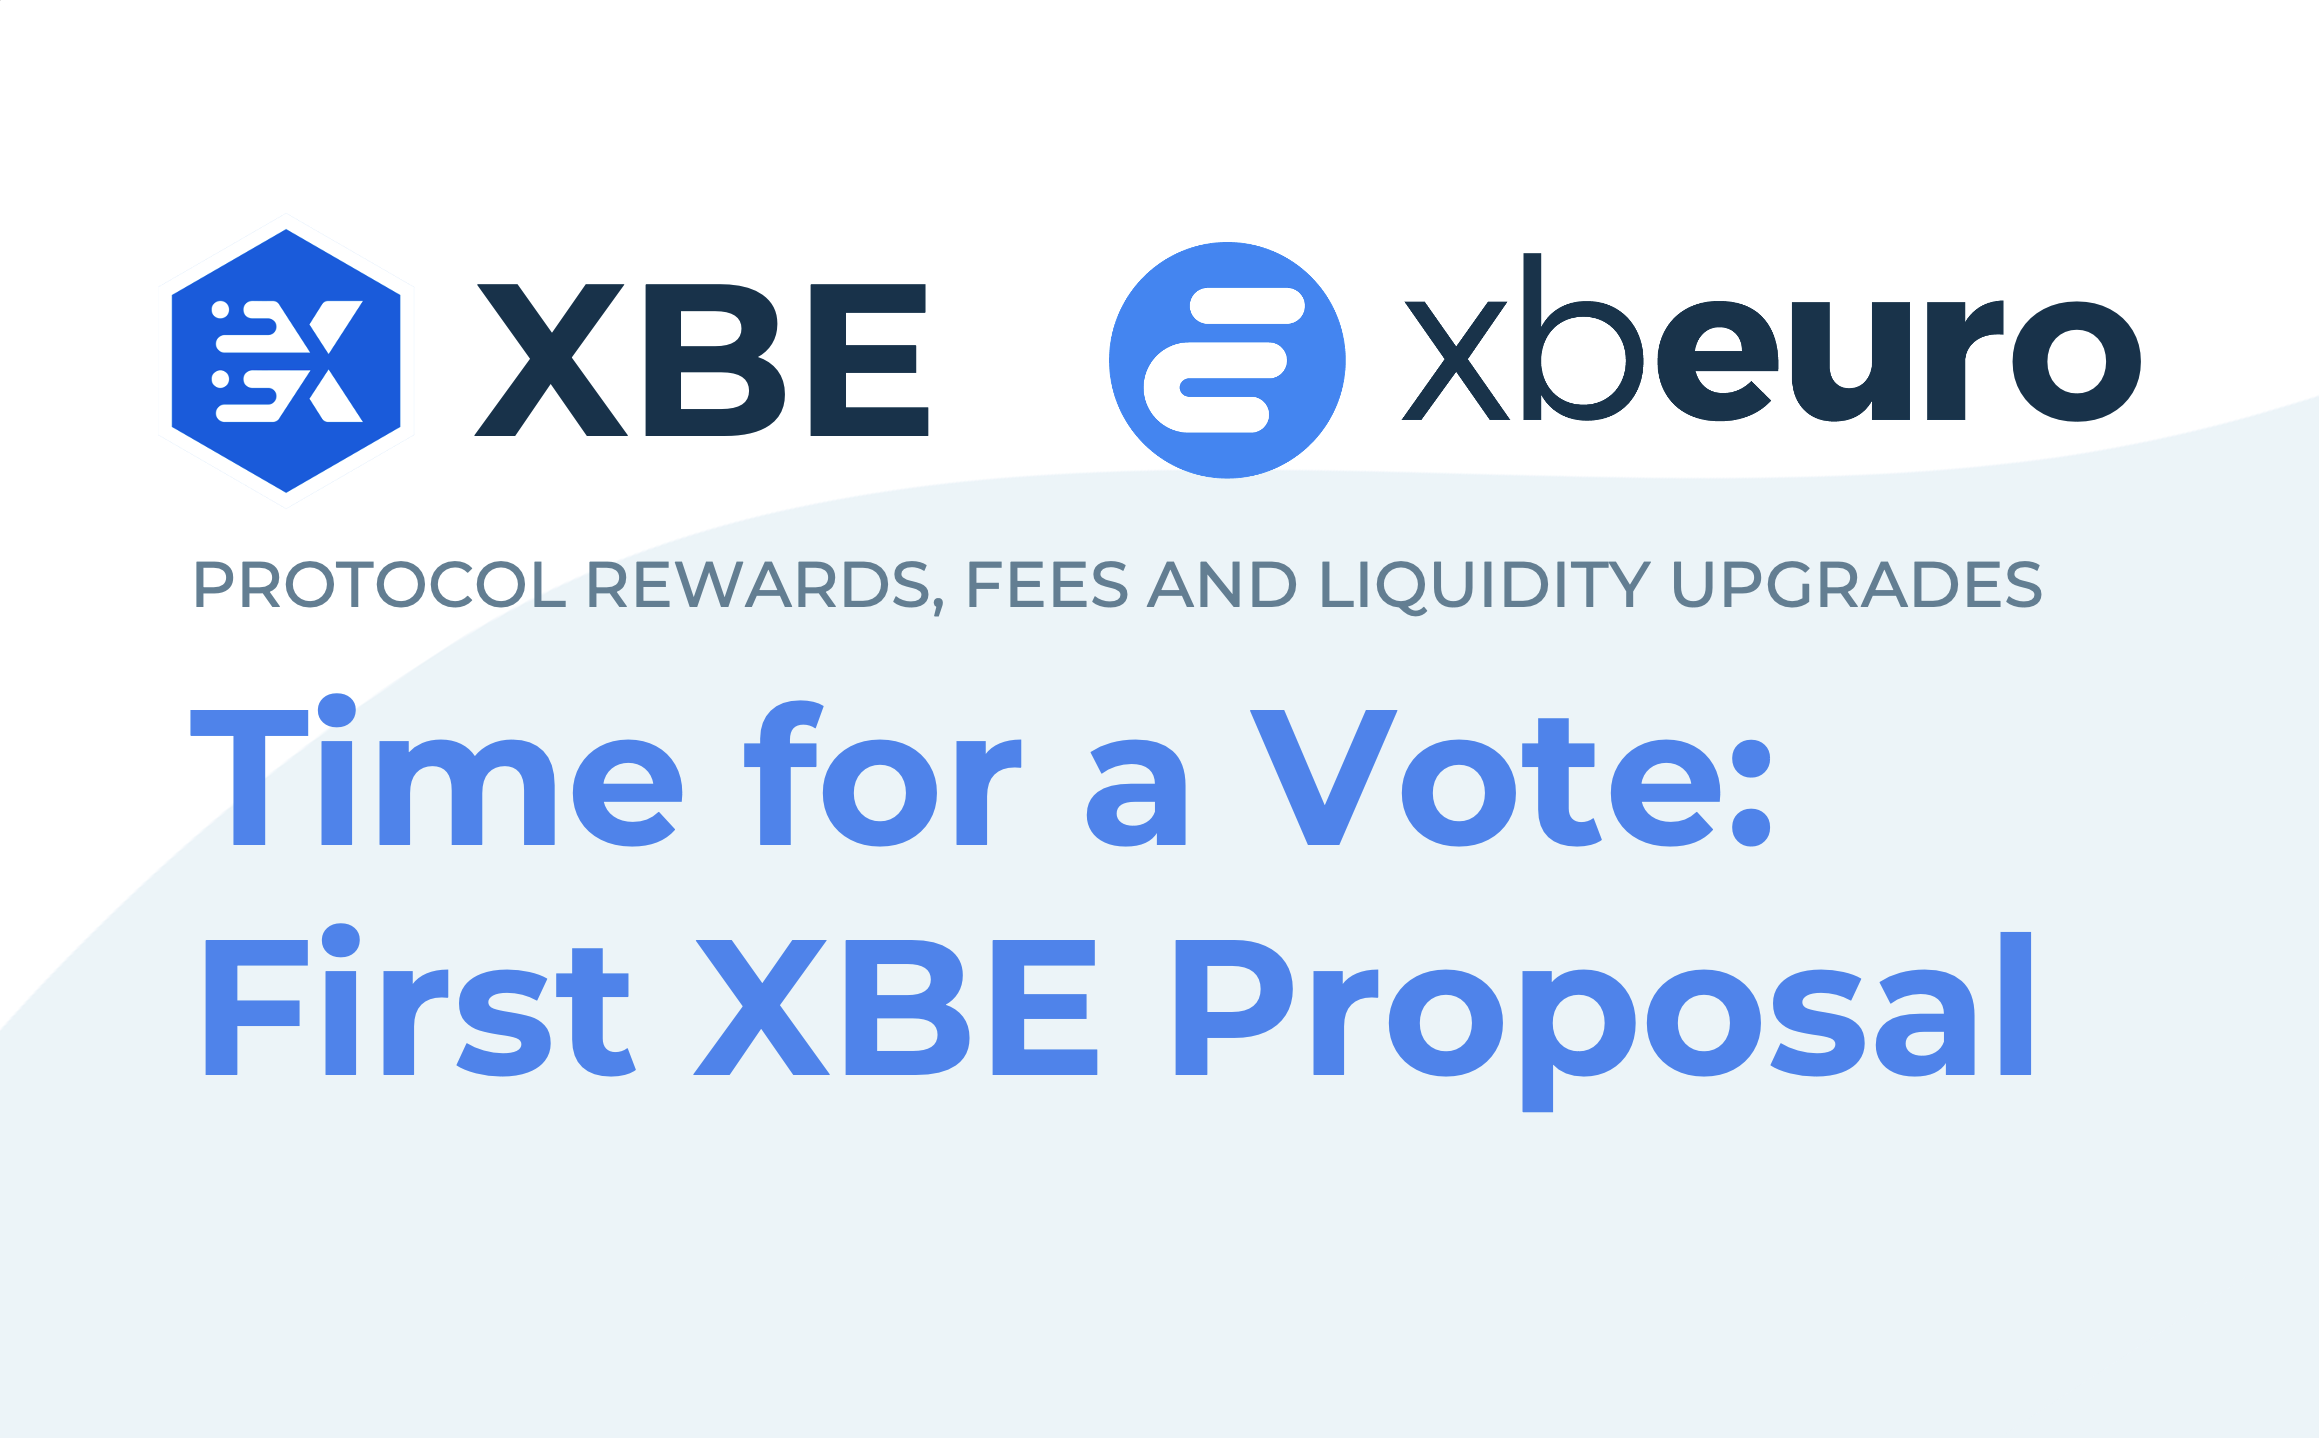 First XBE Proposal: Time to Vote